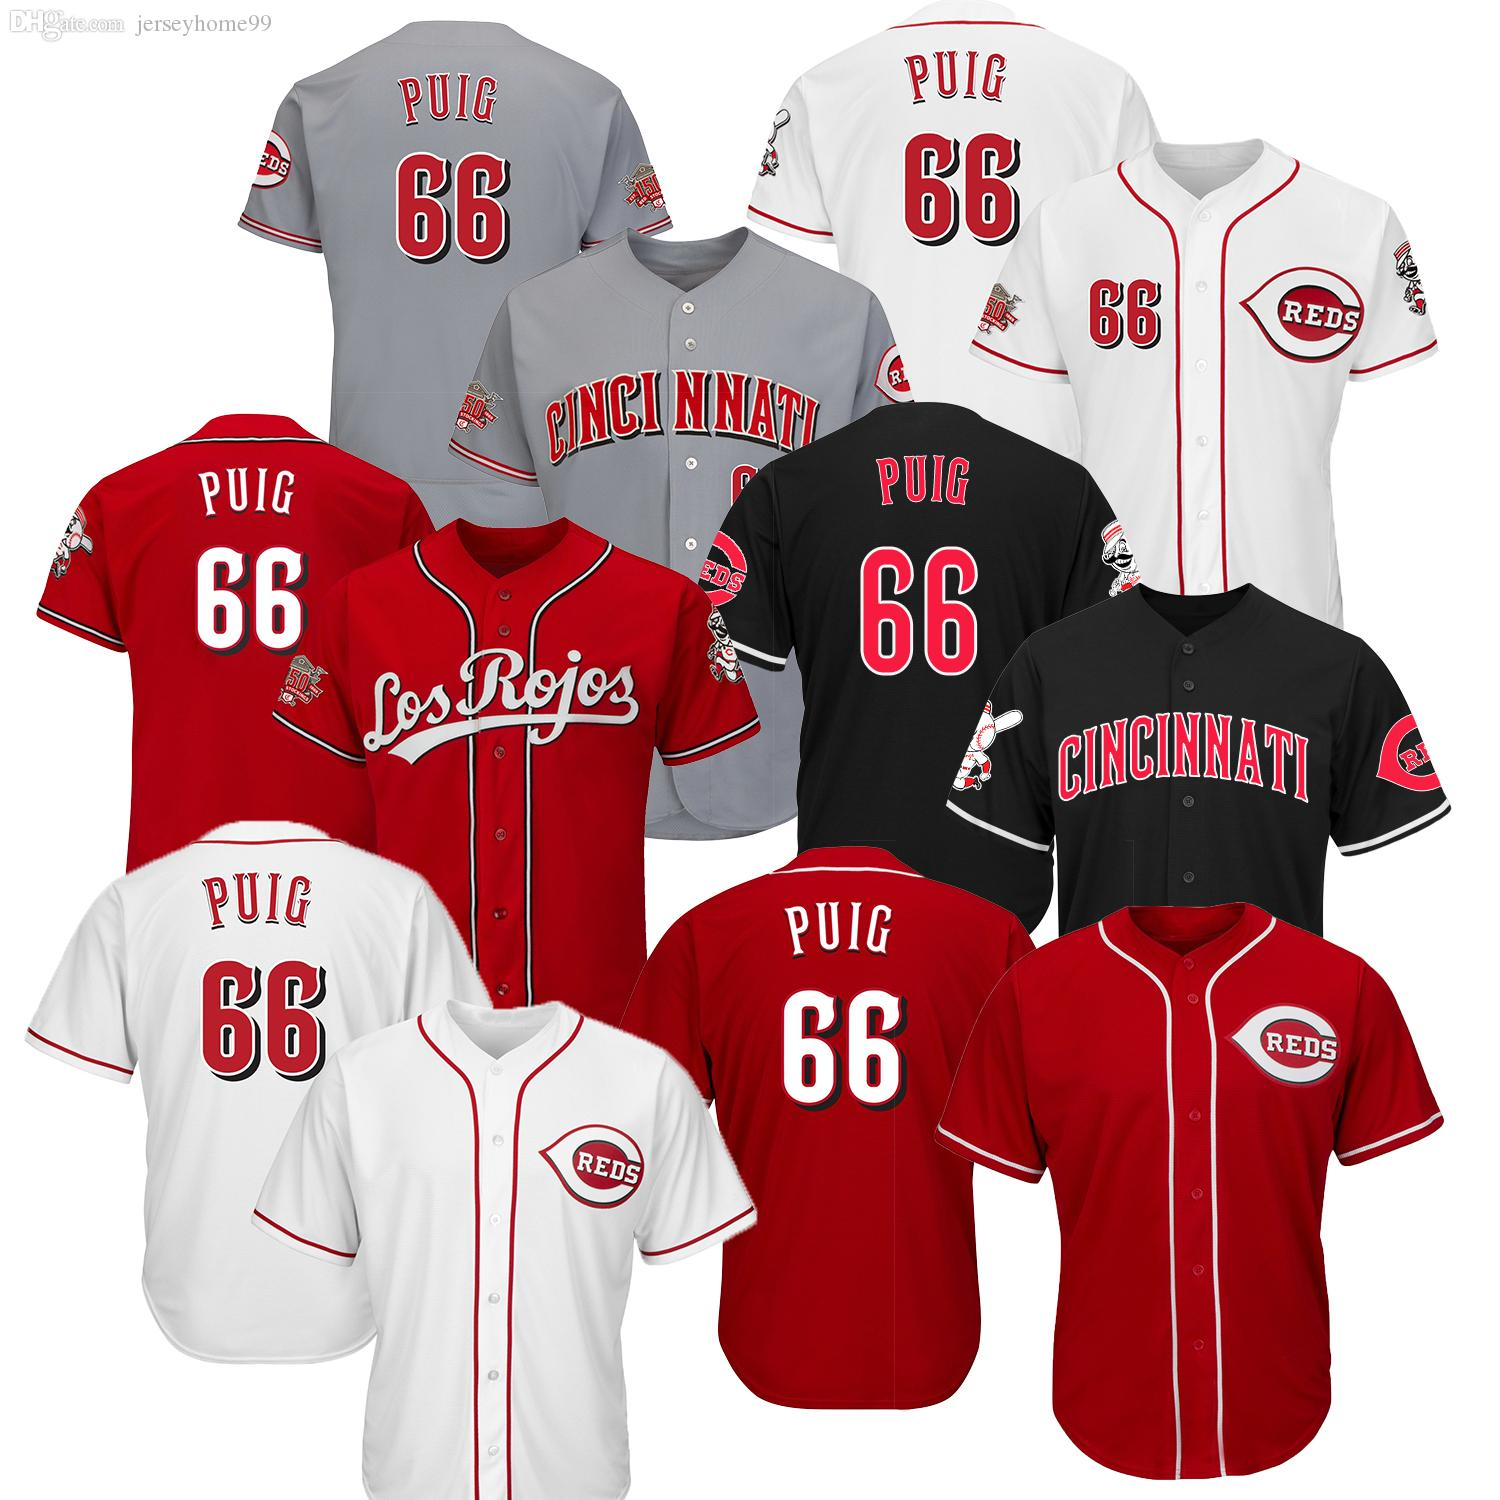 2019 Mens Spring Training 150th Cincinnati Reds Baseball Jersey 66 Yasiel Puig  Jerseys Gray White Red 66 Yasiel Puig Online with  37.87 Piece on ... 98c5d3a7720